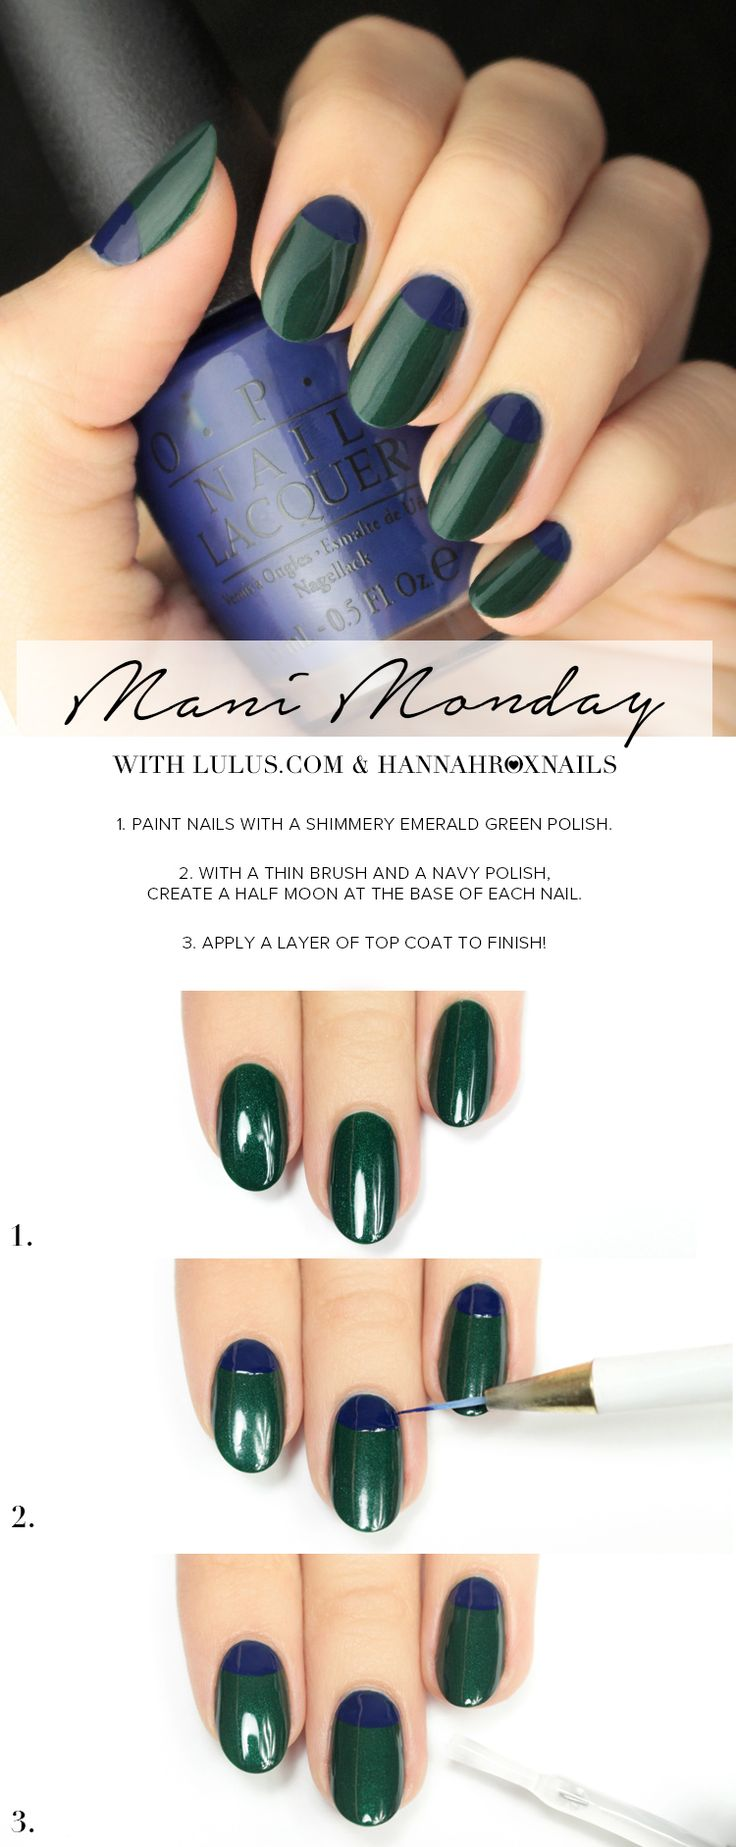 Mani Monday: Blue and Emerald Green Nail Tutorial at LuLus.com!